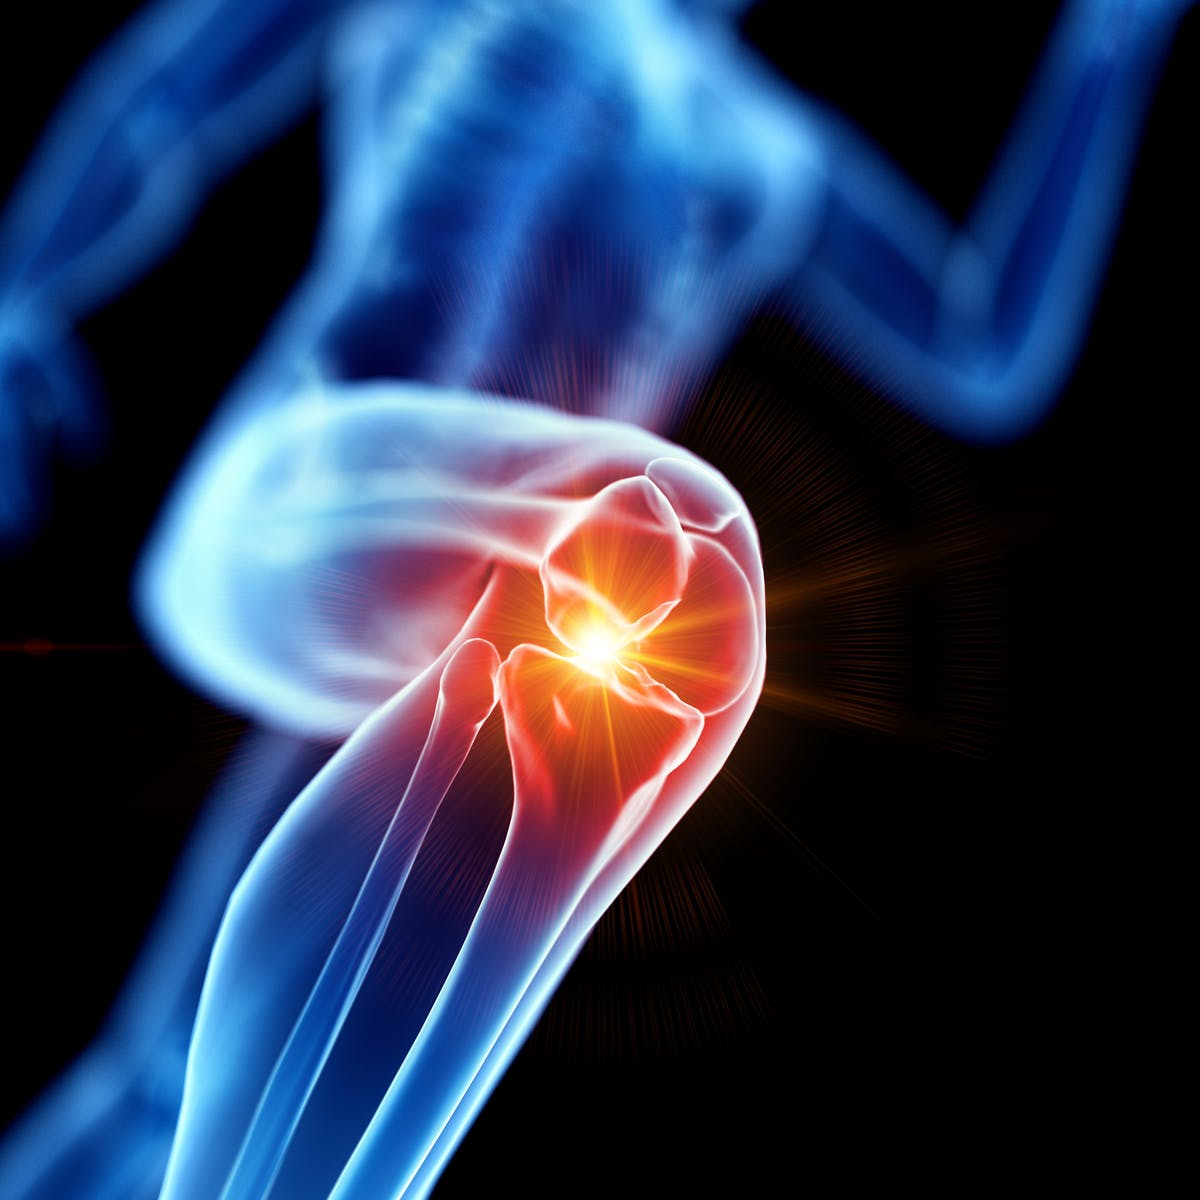 Sars Cov 2 Infection Can Block Pain Opening Up Unexpected New Possibilities For Research Into Pain Relief Medication